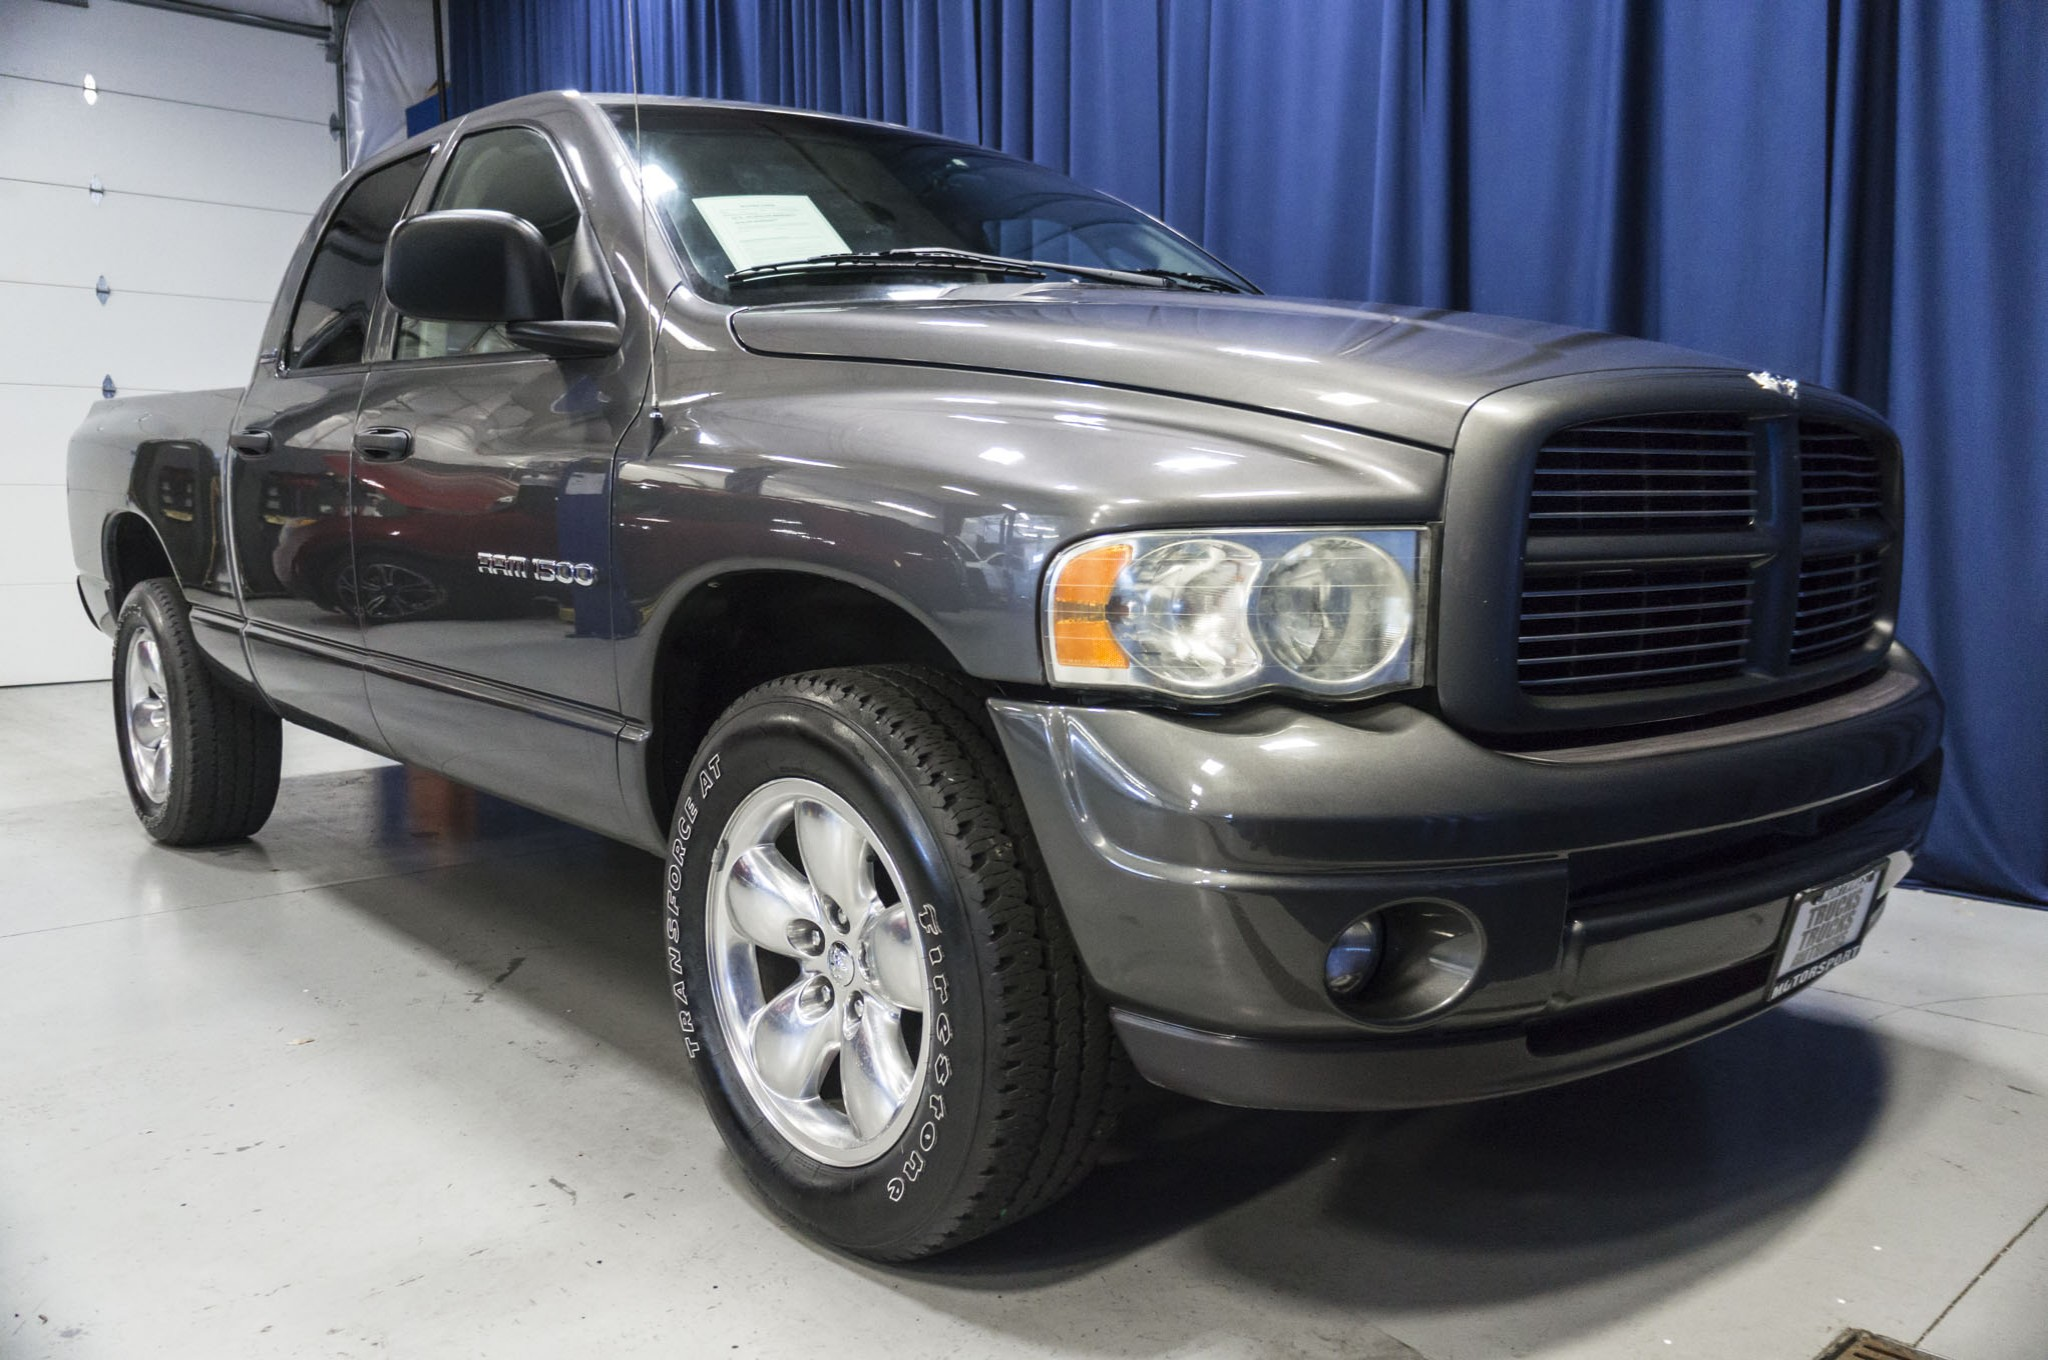 Used 2002 Dodge Ram 1500 Sport 4x4 Truck For Sale A